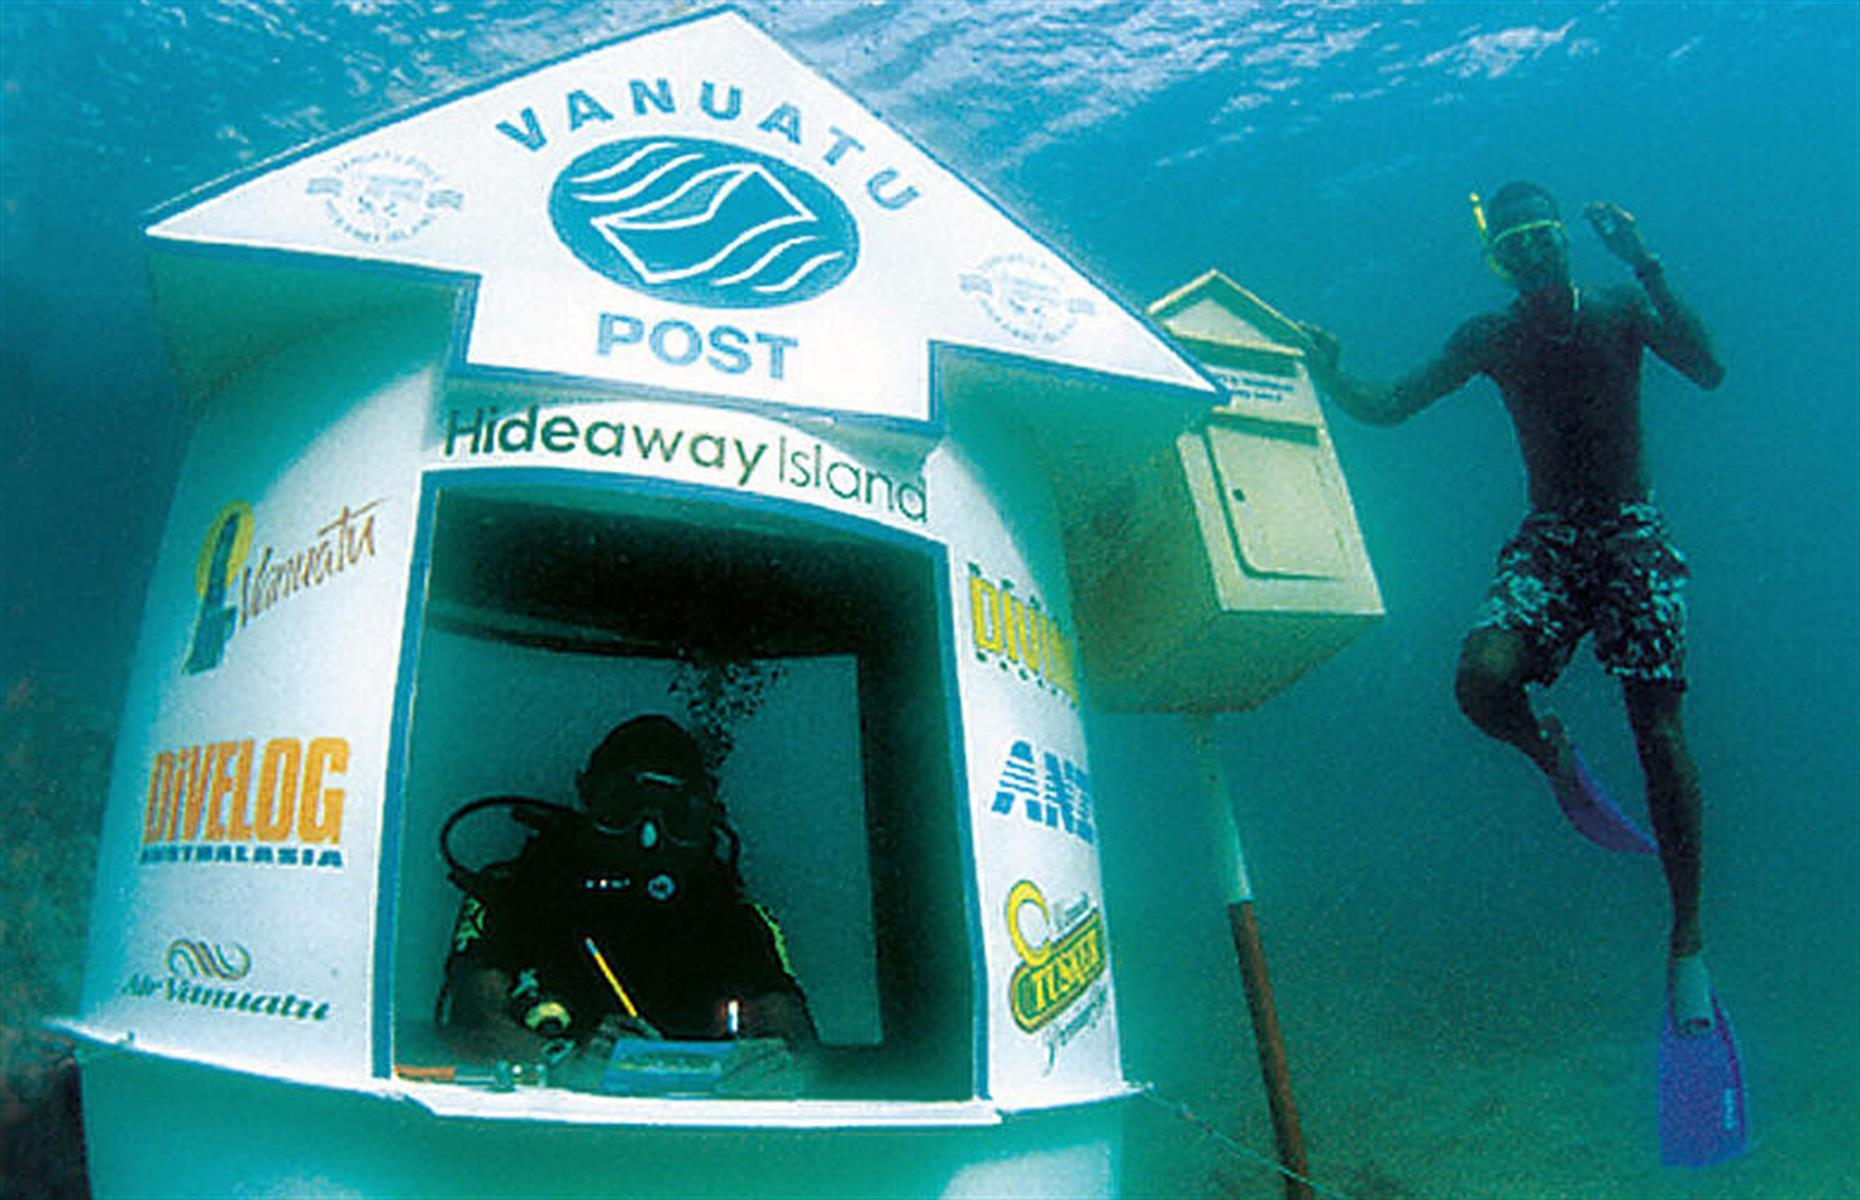 Slide 10 of 31: For many of us a visit to the post office is one of life's more mundane tasks, right? Not so in Vanuatu, where the world's first, and only, underwater post office lurks nine feet (2.8m) below the water's surface just off the coastline in the Hideaway Island Marine Sanctuary. Visitors can snorkel or scuba dive down to the fiberglass postal booth and drop off a special waterproof postcard here, which can then be sent to anywhere in the world.